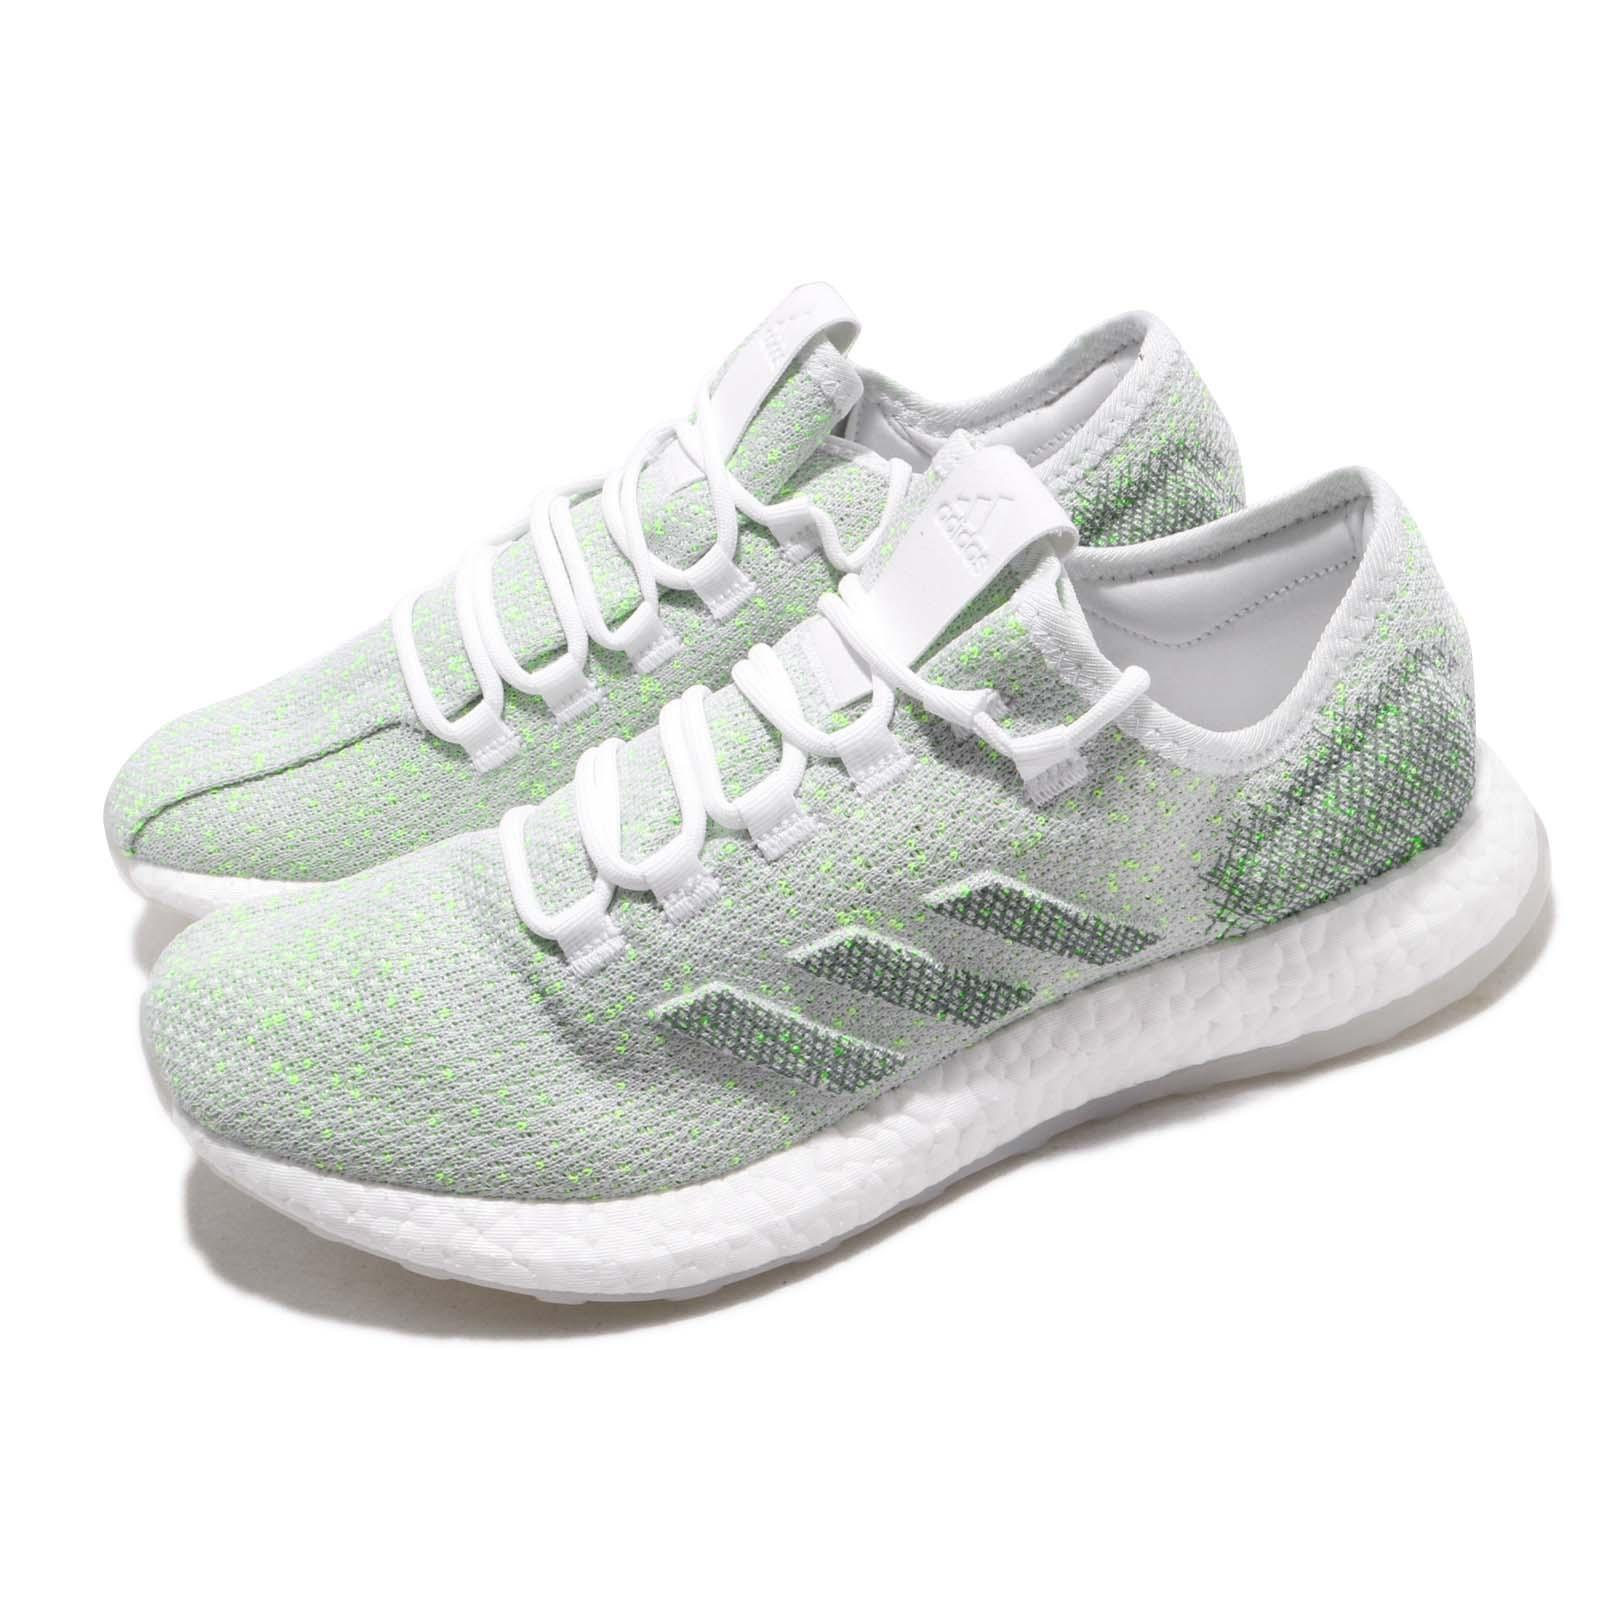 a8e0112bf48f8 Details about adidas PureBOOST LTD White Grey Mens Running Shoes BOOST  B37810